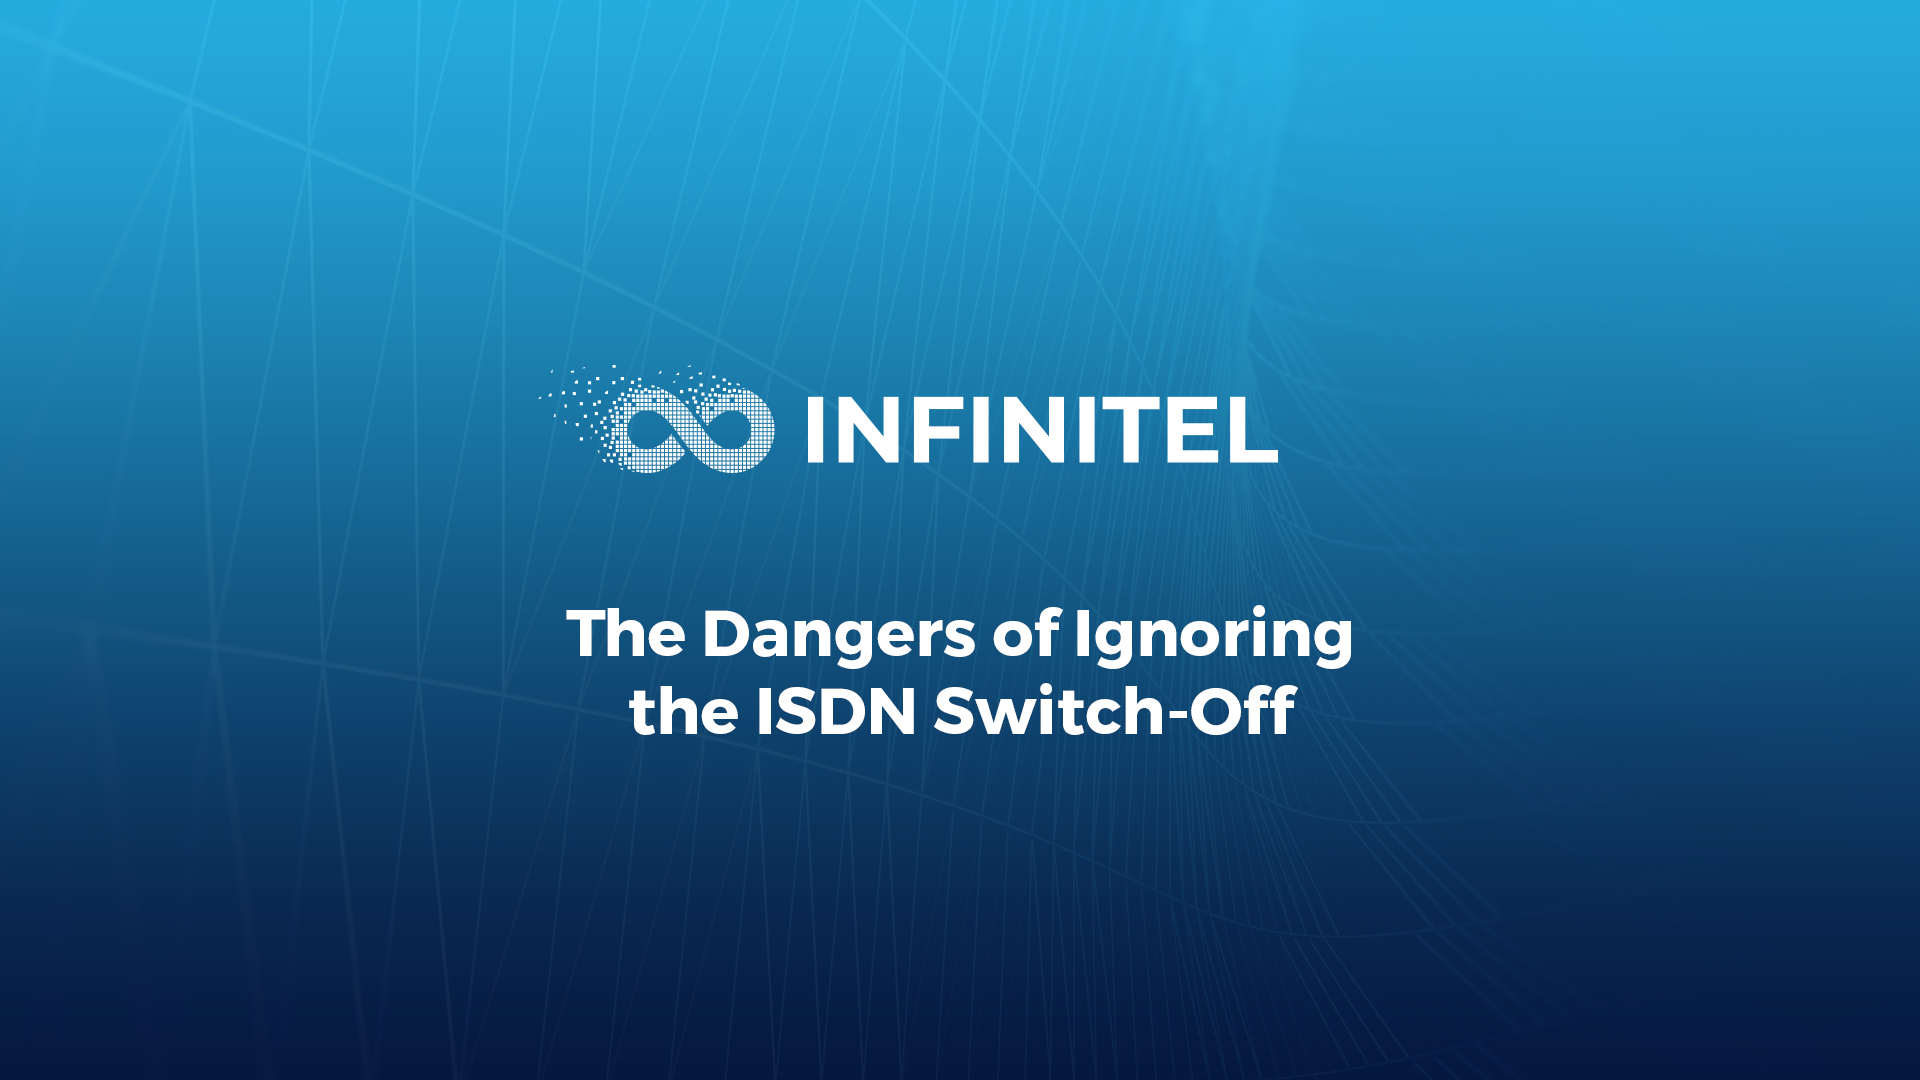 The Dangers of Ignoring the ISDN Switch-Off